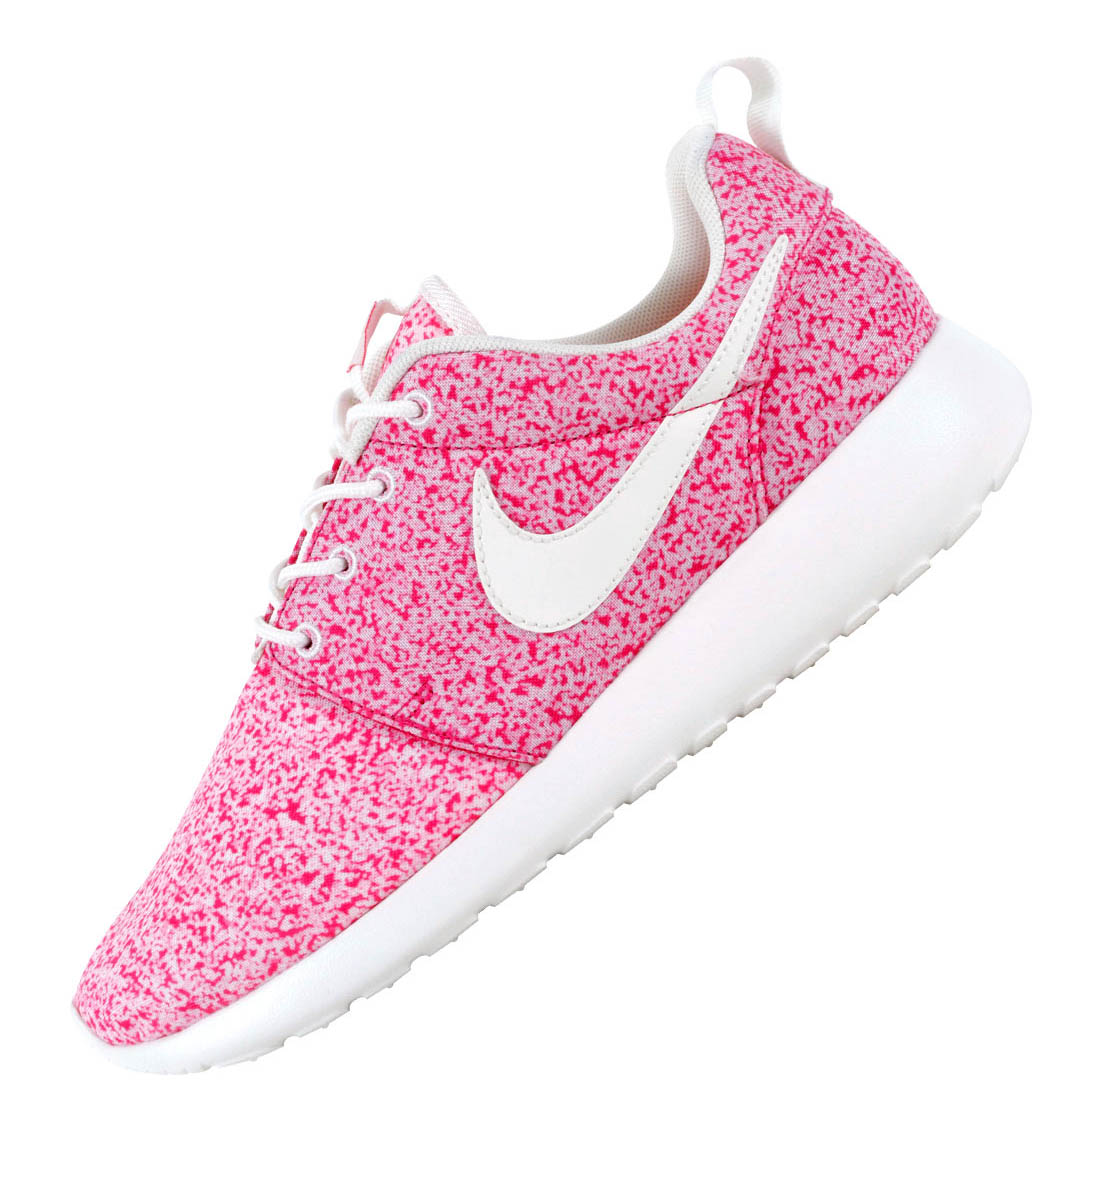 vgugym Alliance for Networking Visual Culture » Pink And Grey Speckled Roshe